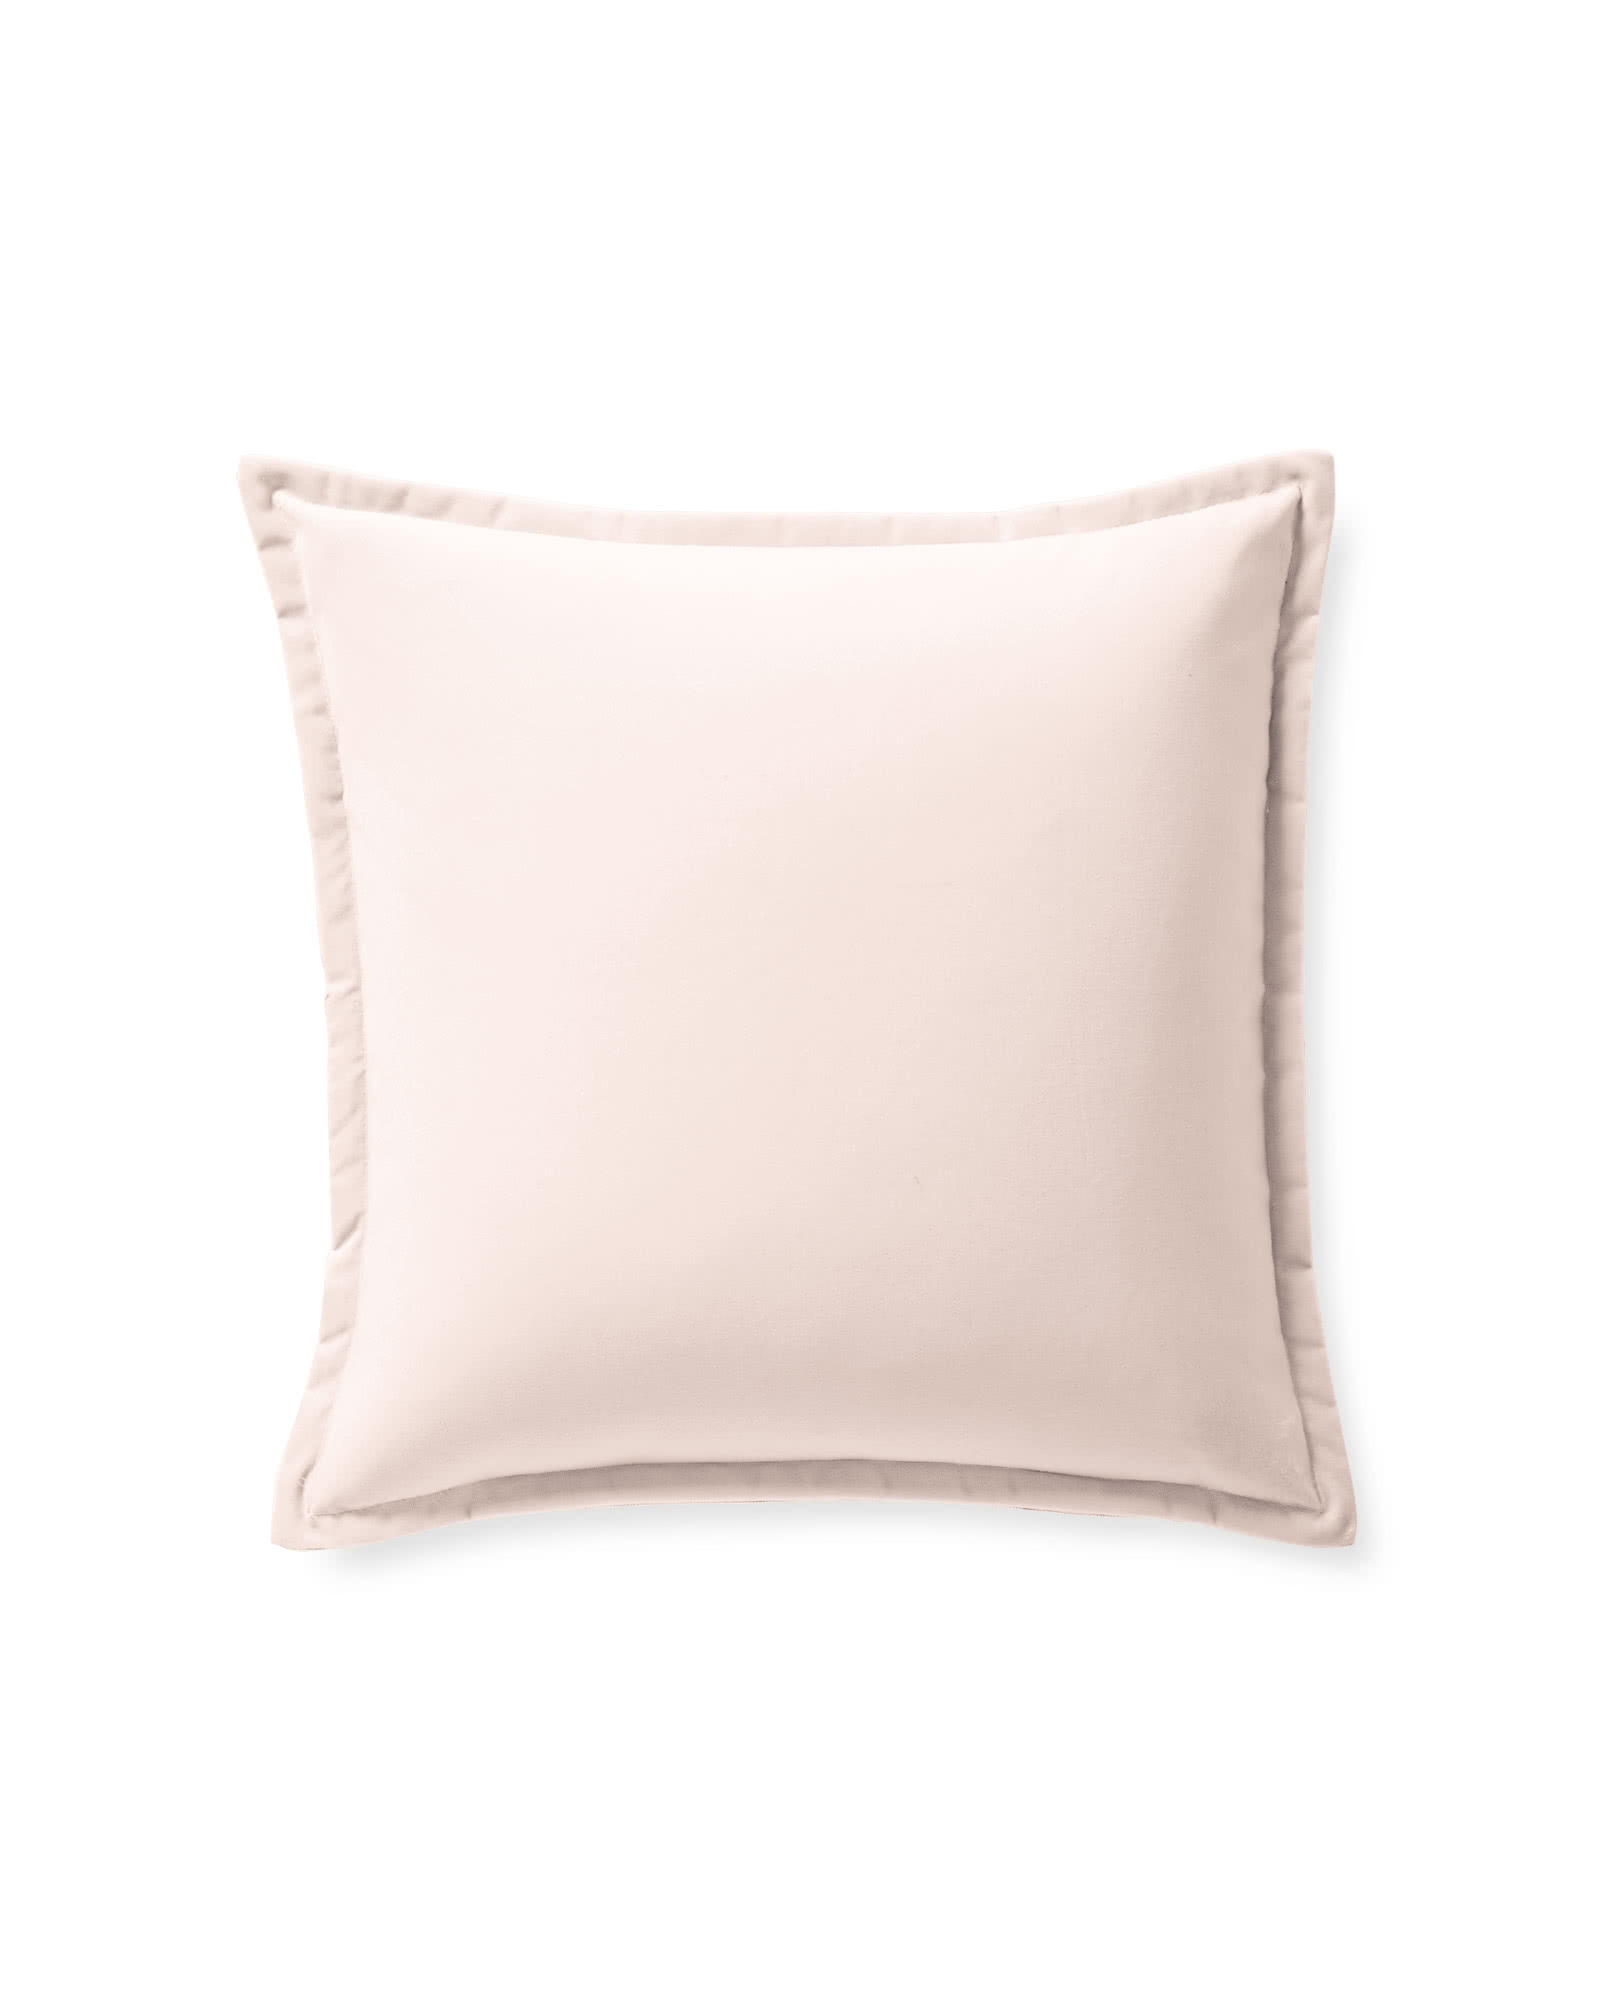 Quinn Velvet Pillow Cover, Pink Sand